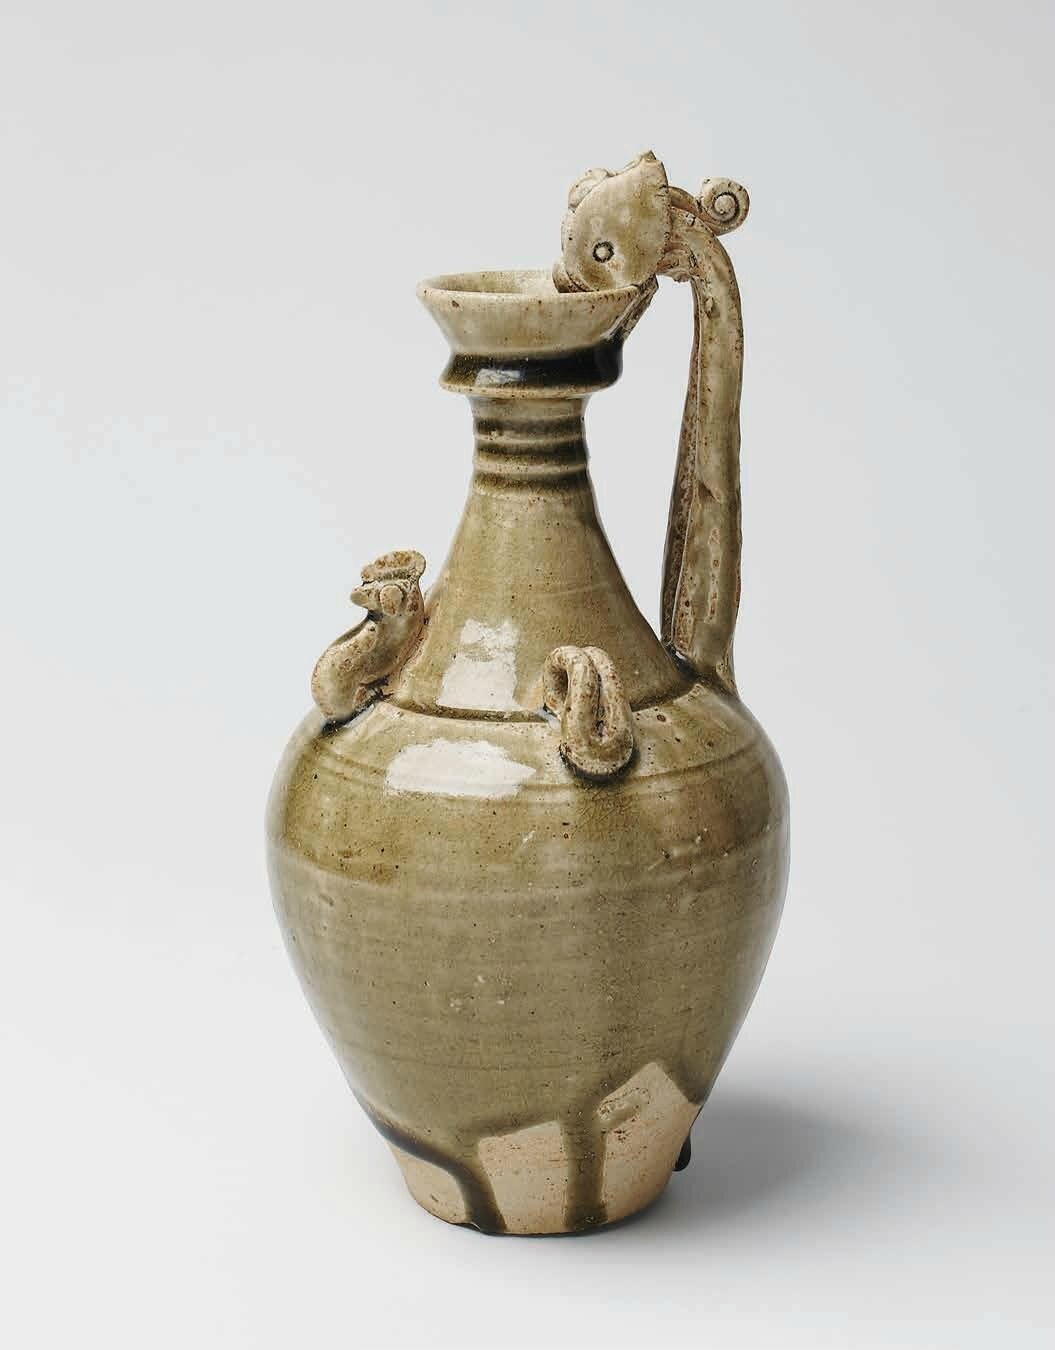 Green Glazed Amphora, Late Sui – Early Tang Dynasty, 6th – 7th c